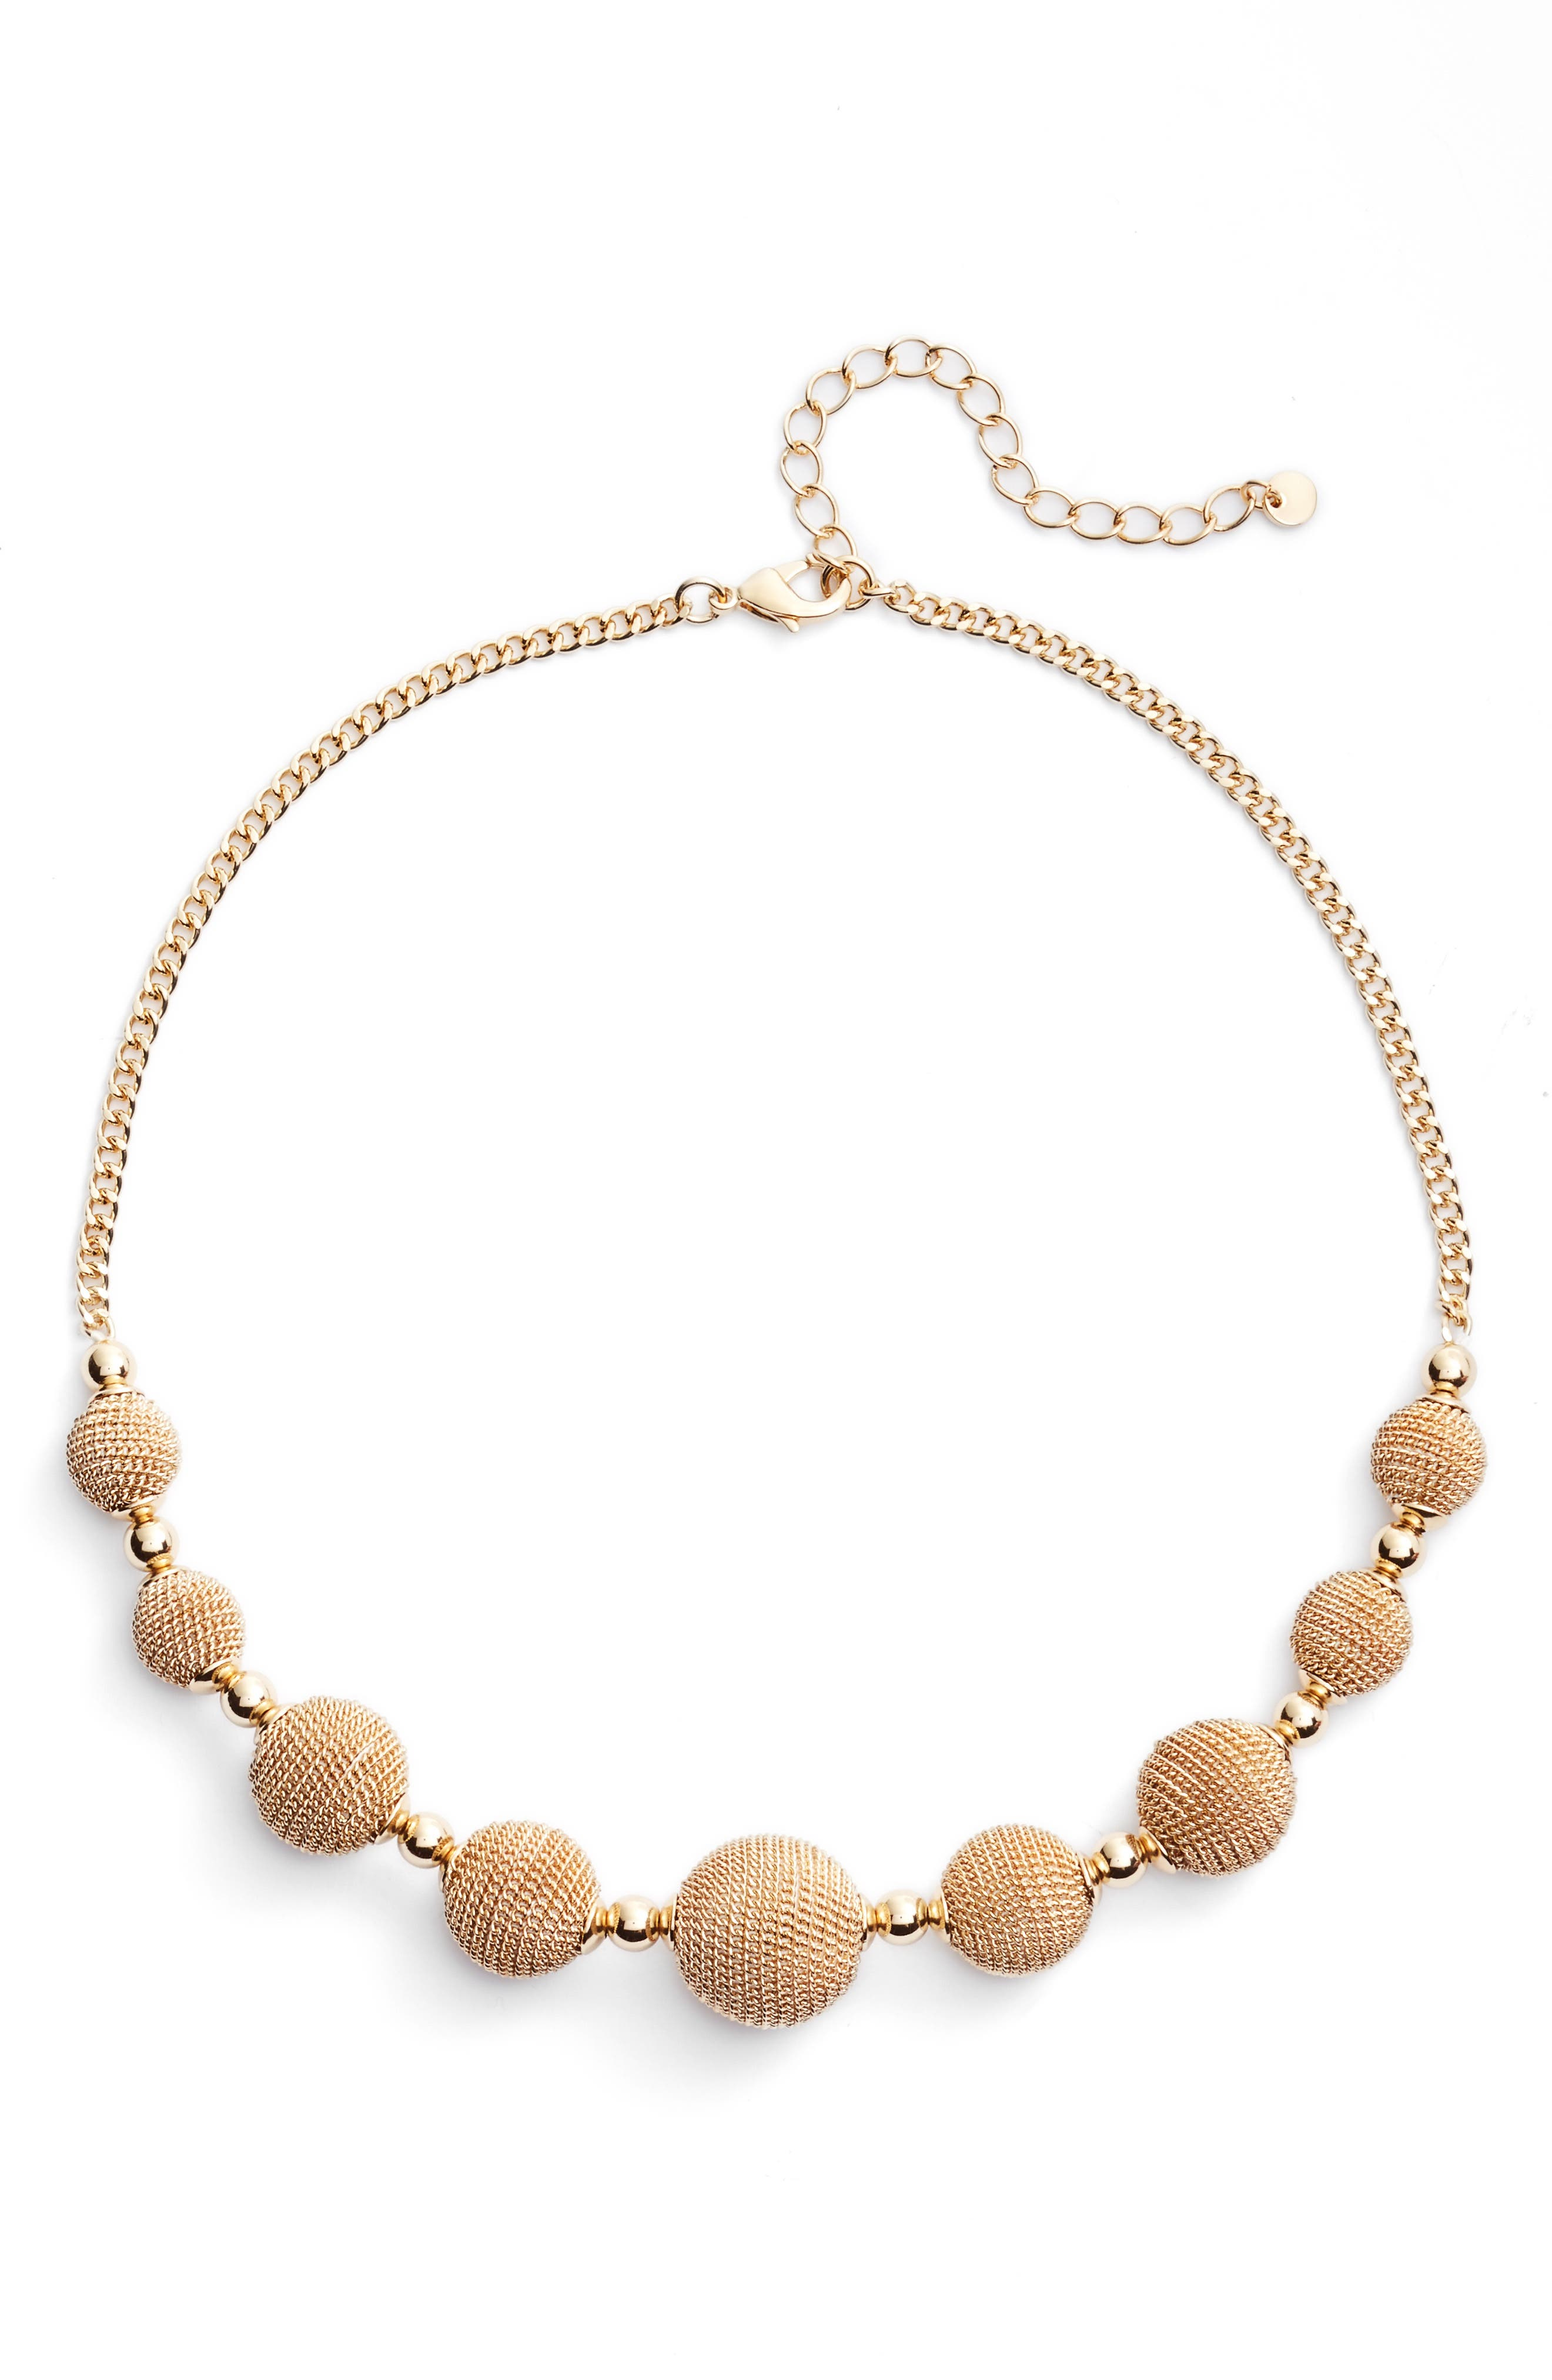 Alternate Image 1 Selected - Halogen® Textured Charm Collar Necklace